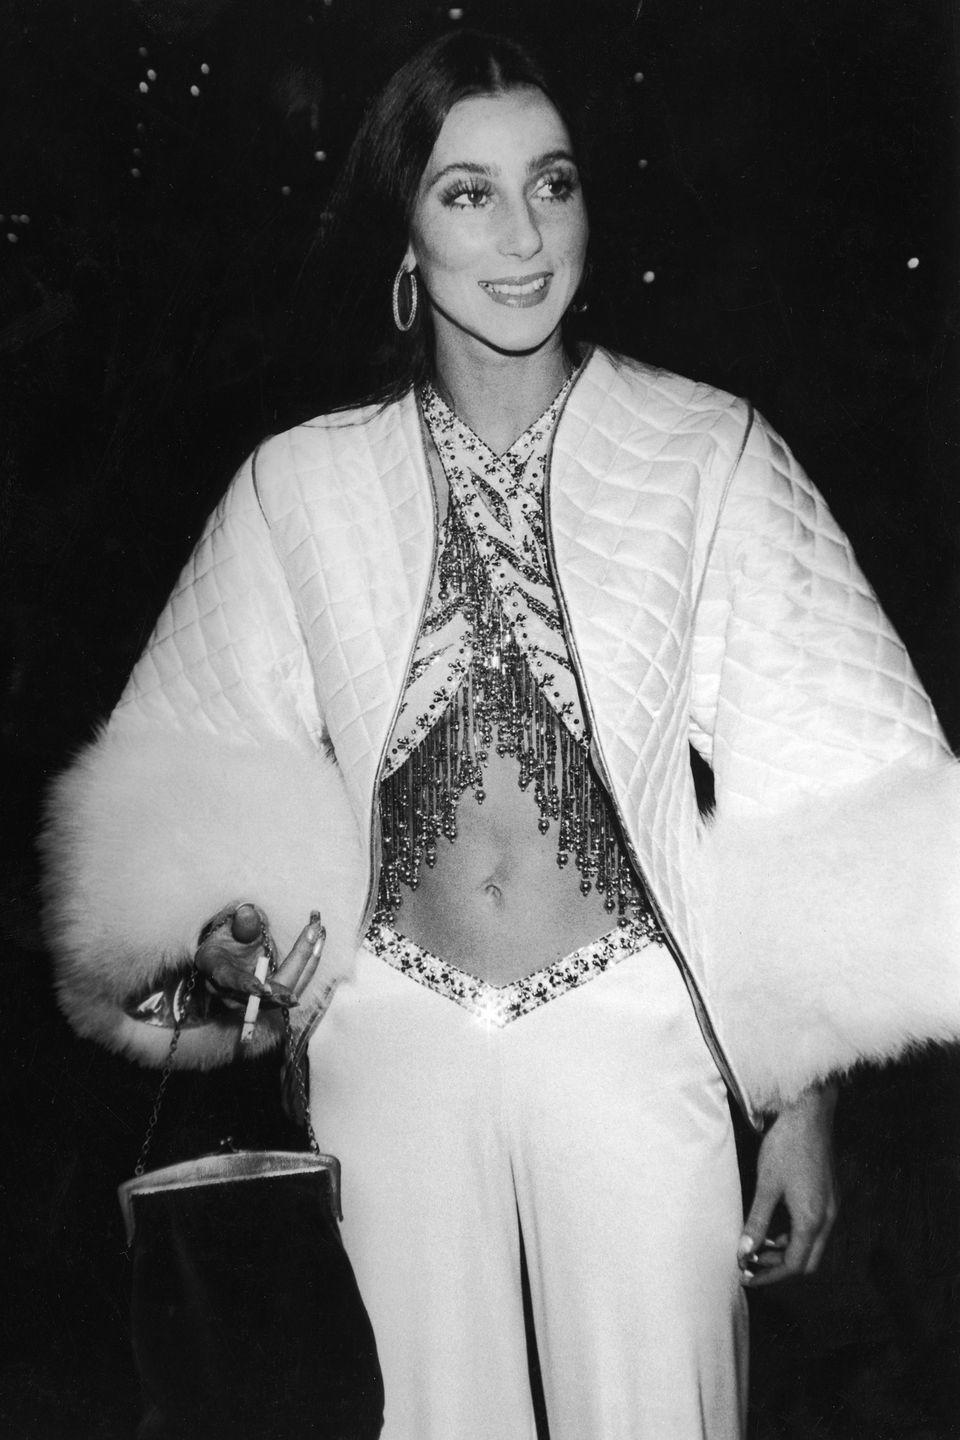 <p>She holds a cigarette while posing in crisscrossed sequined halter top and a fur-trimmed quilted coat.</p>